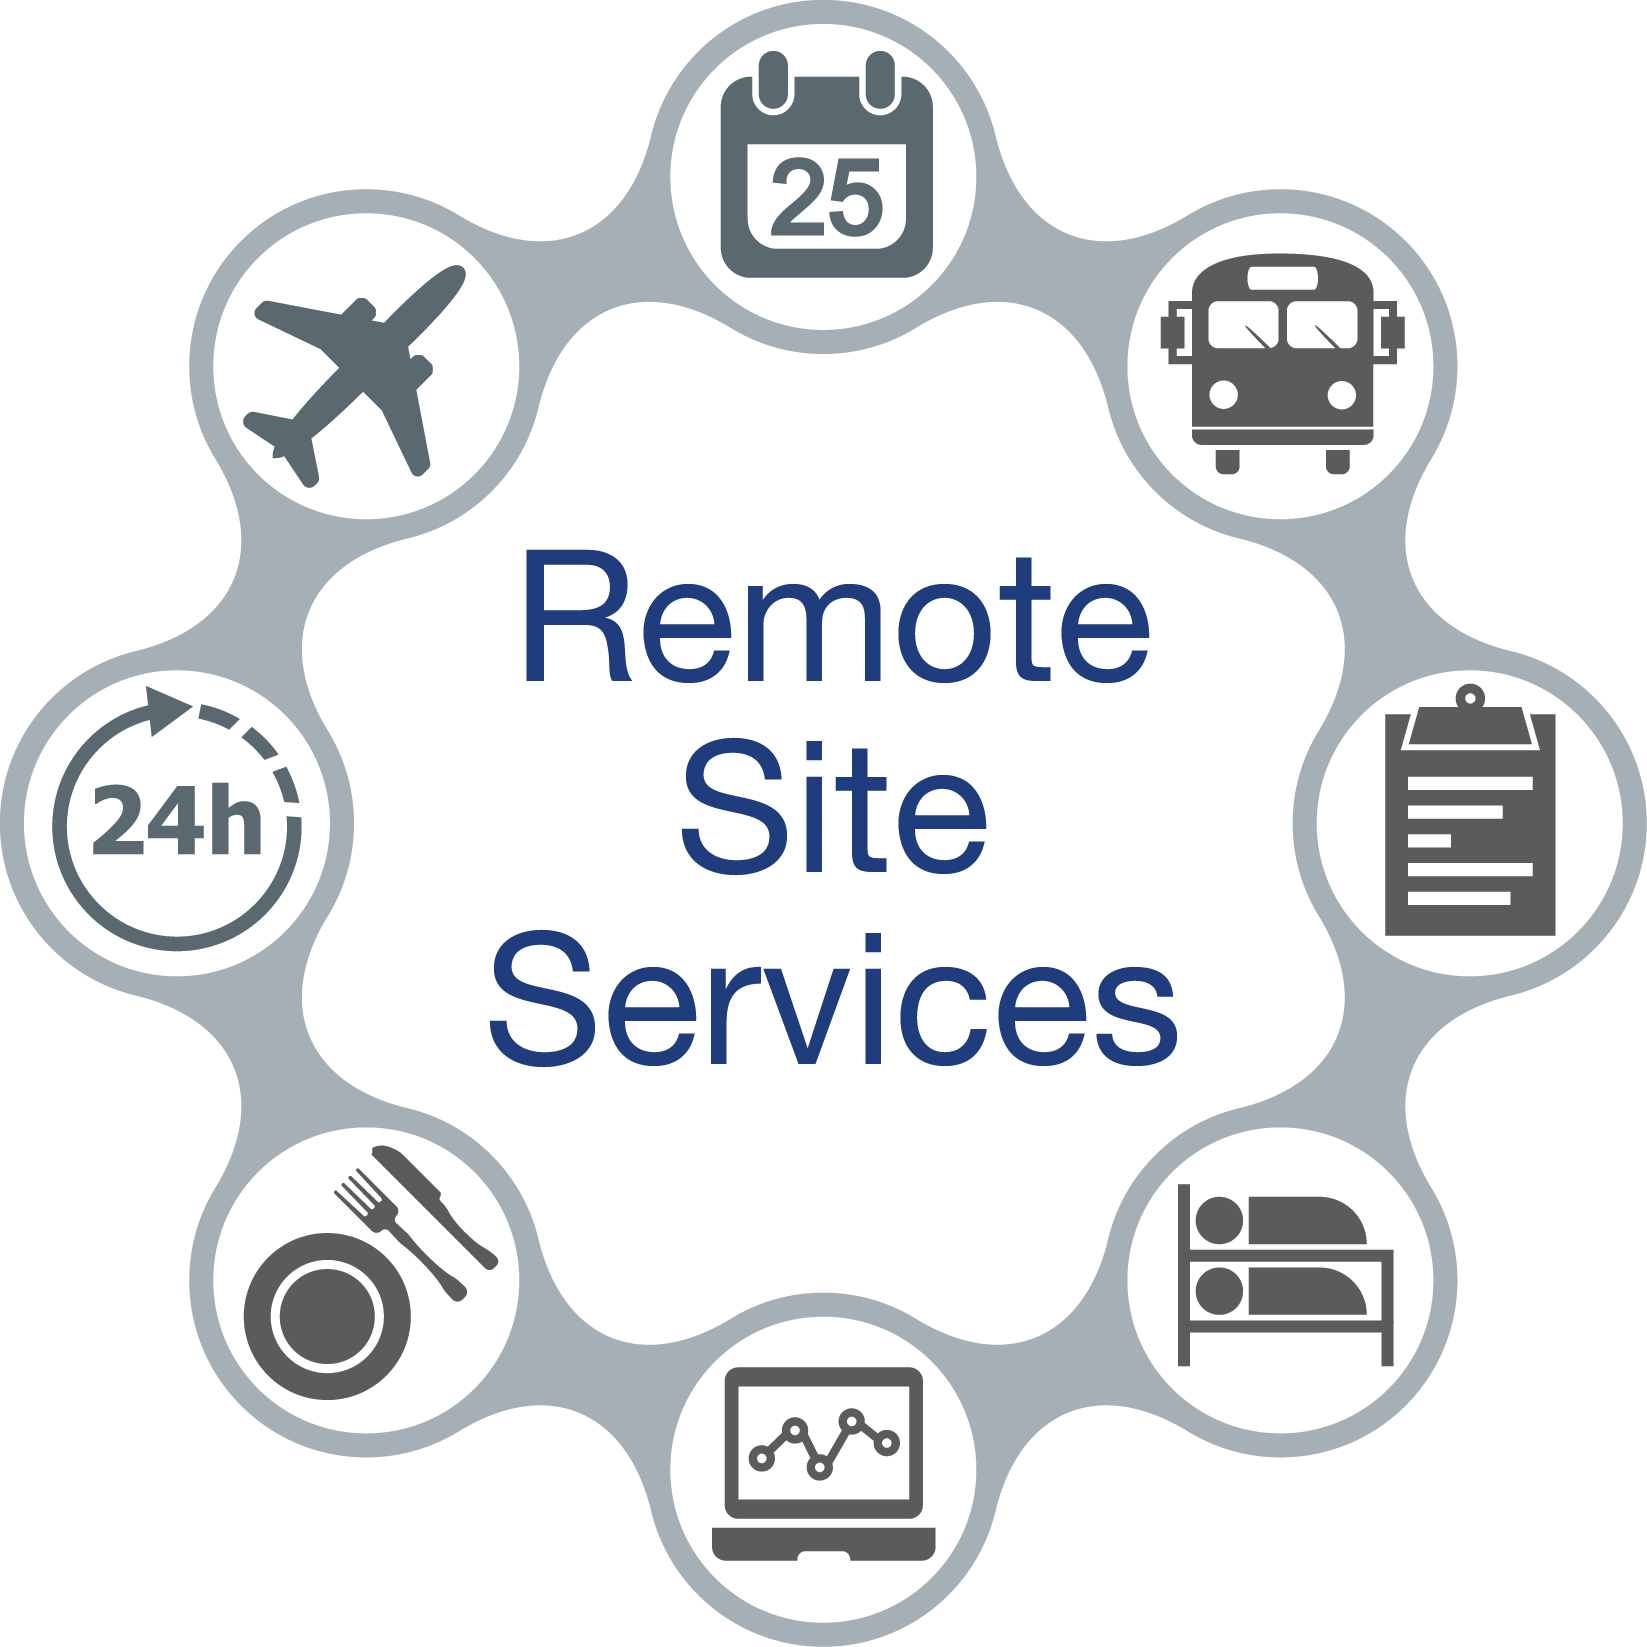 Remote_Site_Services_Icon.png